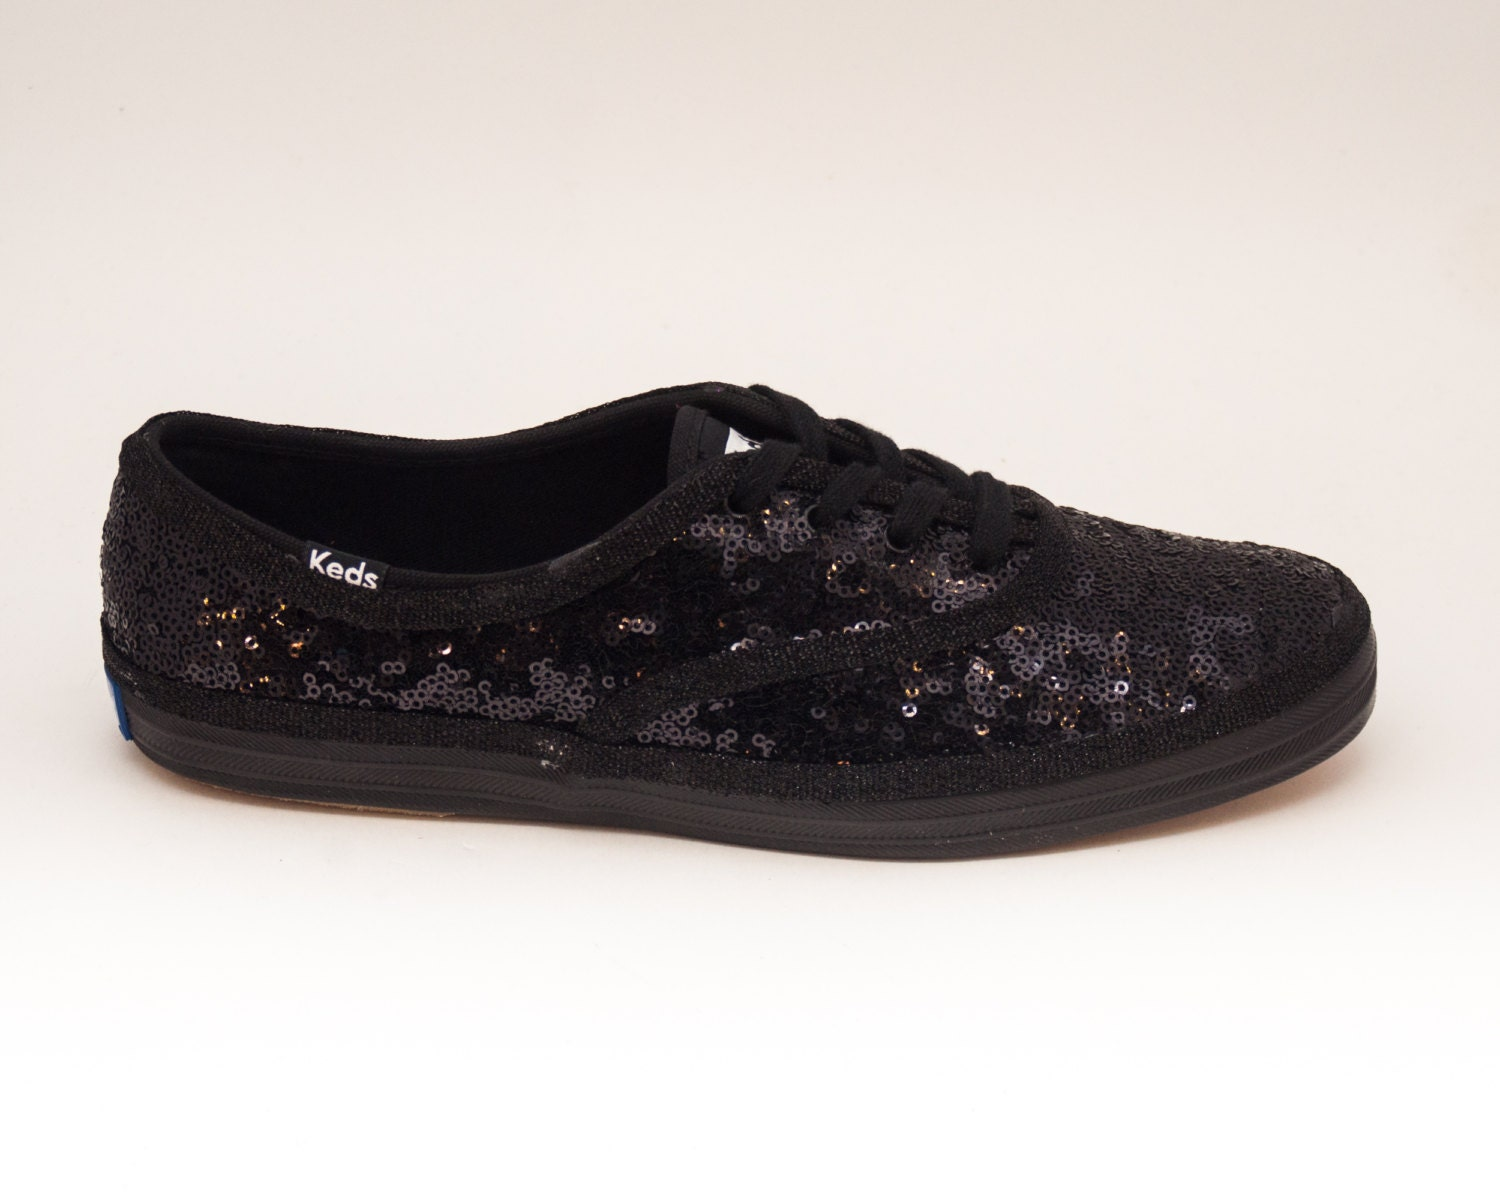 sequin all black keds sneaker canvas tennis shoes by